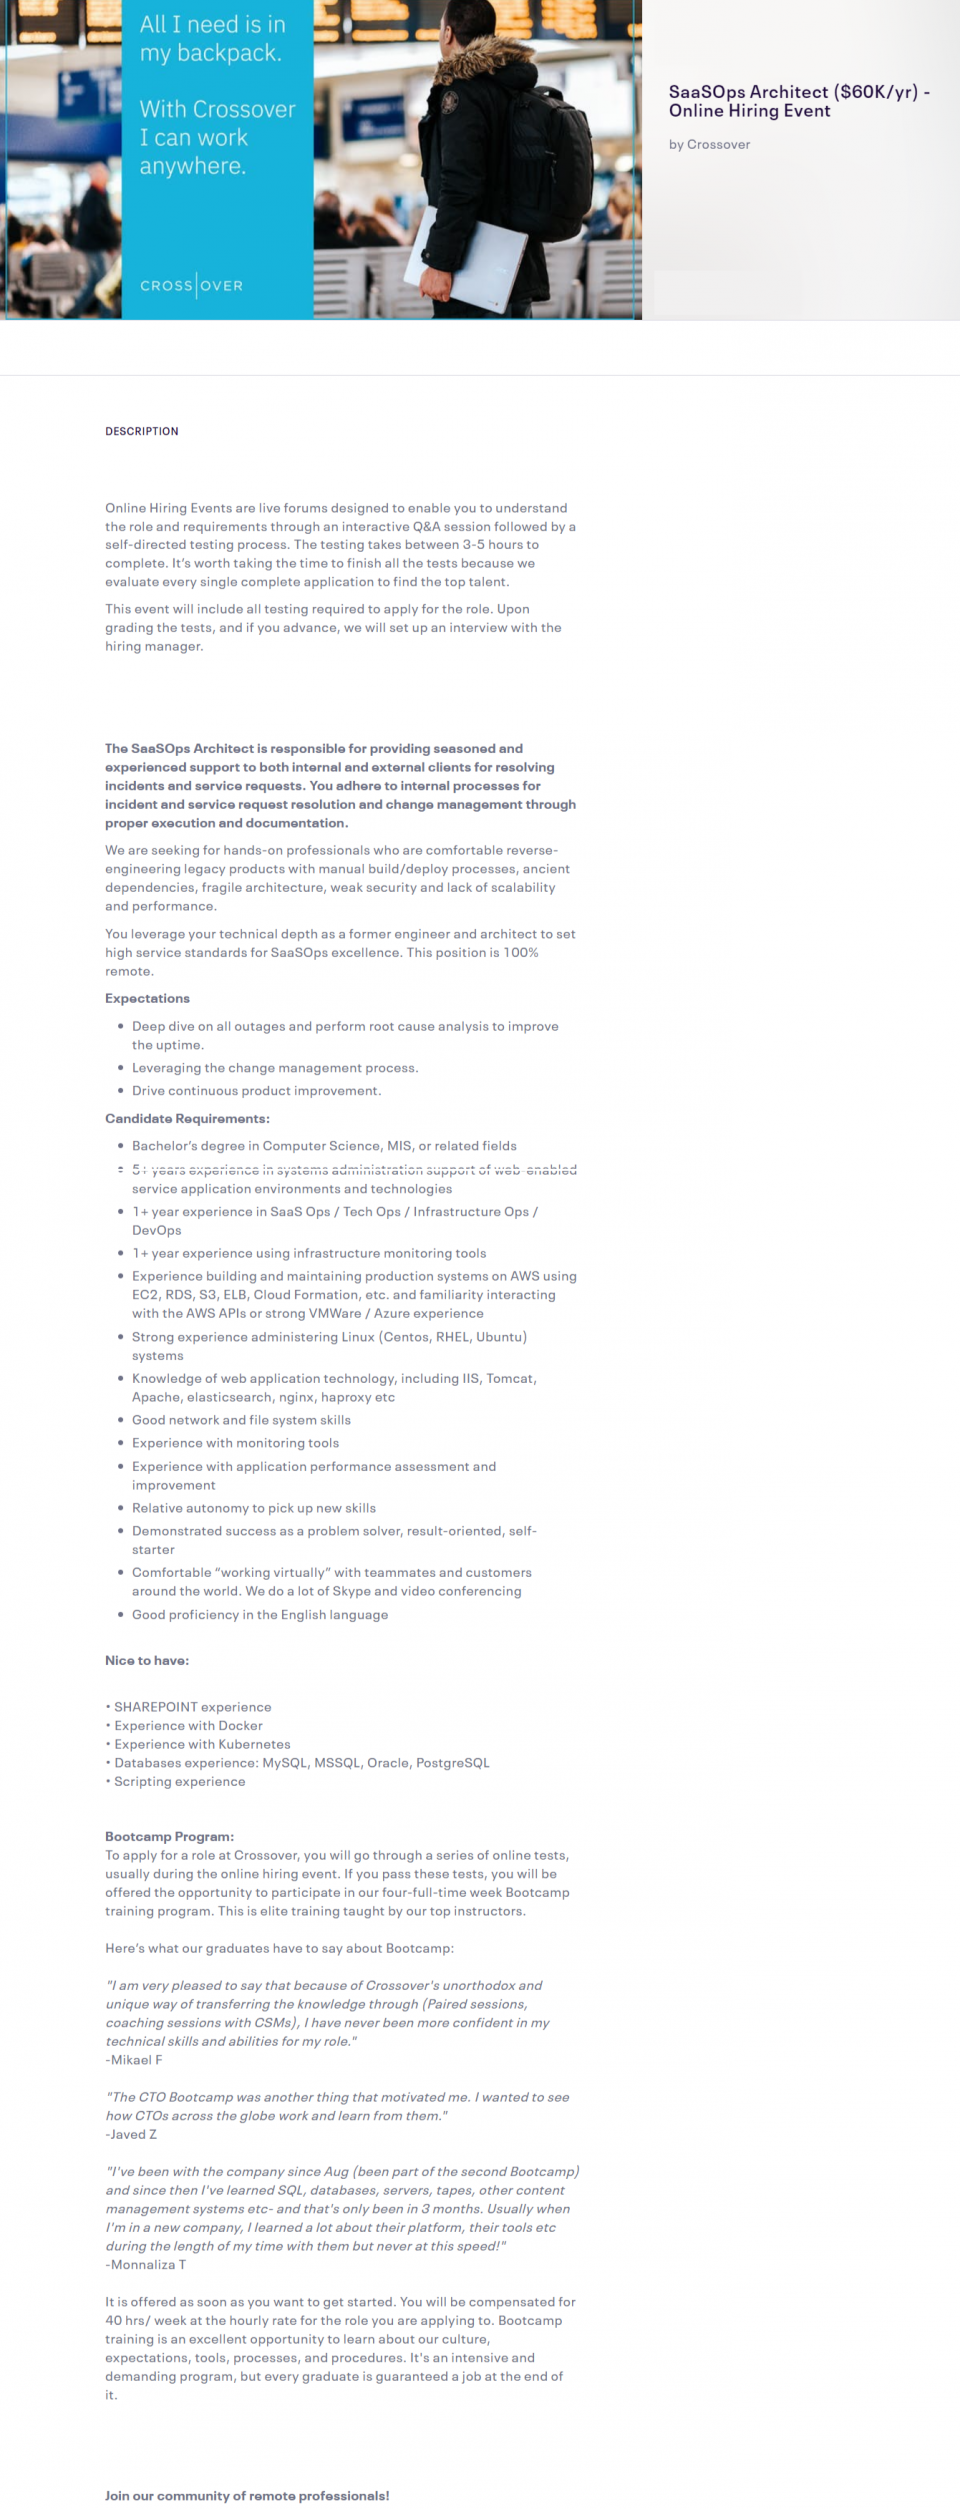 """Candidate Requirements:  Bachelor's degree in Computer Science, MIS, or related fields 5+ years experience in systems administration support of web-enabled service application environments and technologies 1+ year experience in SaaS Ops / Tech Ops / Infrastructure Ops / DevOps 1+ year experience using infrastructure monitoring tools Experience building and maintaining production systems on AWS using EC2, RDS, S3, ELB, Cloud Formation, etc. and familiarity interacting with the AWS APIs or strong VMWare / Azure experience Strong experience administering Linux (Centos, RHEL, Ubuntu) systems Knowledge of web application technology, including IIS, Tomcat, Apache, elasticsearch, nginx, haproxy etc Good network and file system skills Experience with monitoring tools Experience with application performance assessment and improvement Relative autonomy to pick up new skills Demonstrated success as a problem solver, result-oriented, self-starter Comfortable """"working virtually"""" with teammates and customers around the world. We do a lot of Skype and video conferencing Good proficiency in the English language   Nice to have:   • SHAREPOINT experience • Experience with Docker • Experience with Kubernetes • Databases experience: MySQL, MSSQL, Oracle, PostgreSQL • Scripting experience     Bootcamp Program:To apply for a role at Crossover, you will go through a series of online tests, usually during the online hiring event. If you pass these tests, you will be offered the opportunity to participate in our four-full-time week Bootcamp training program. This is elite training taught by our top instructors.  Here's what our graduates have to say about Bootcamp:"""